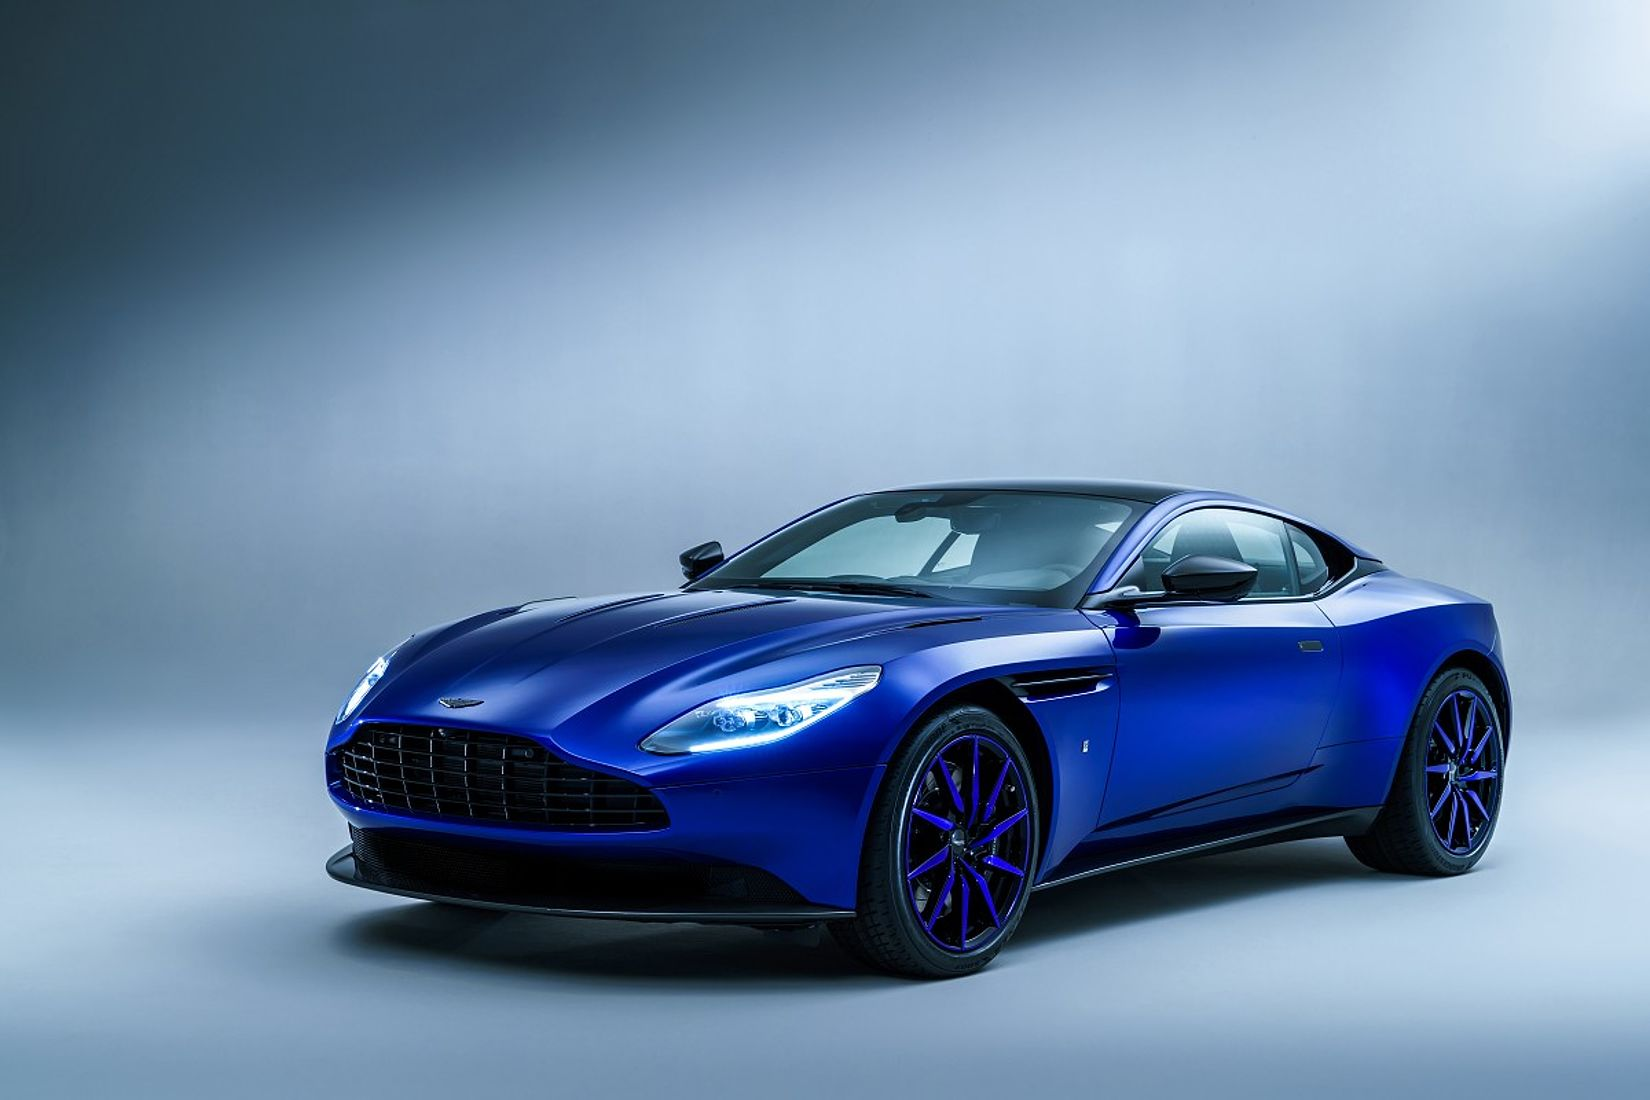 2017: Q by Aston Martin - Comission